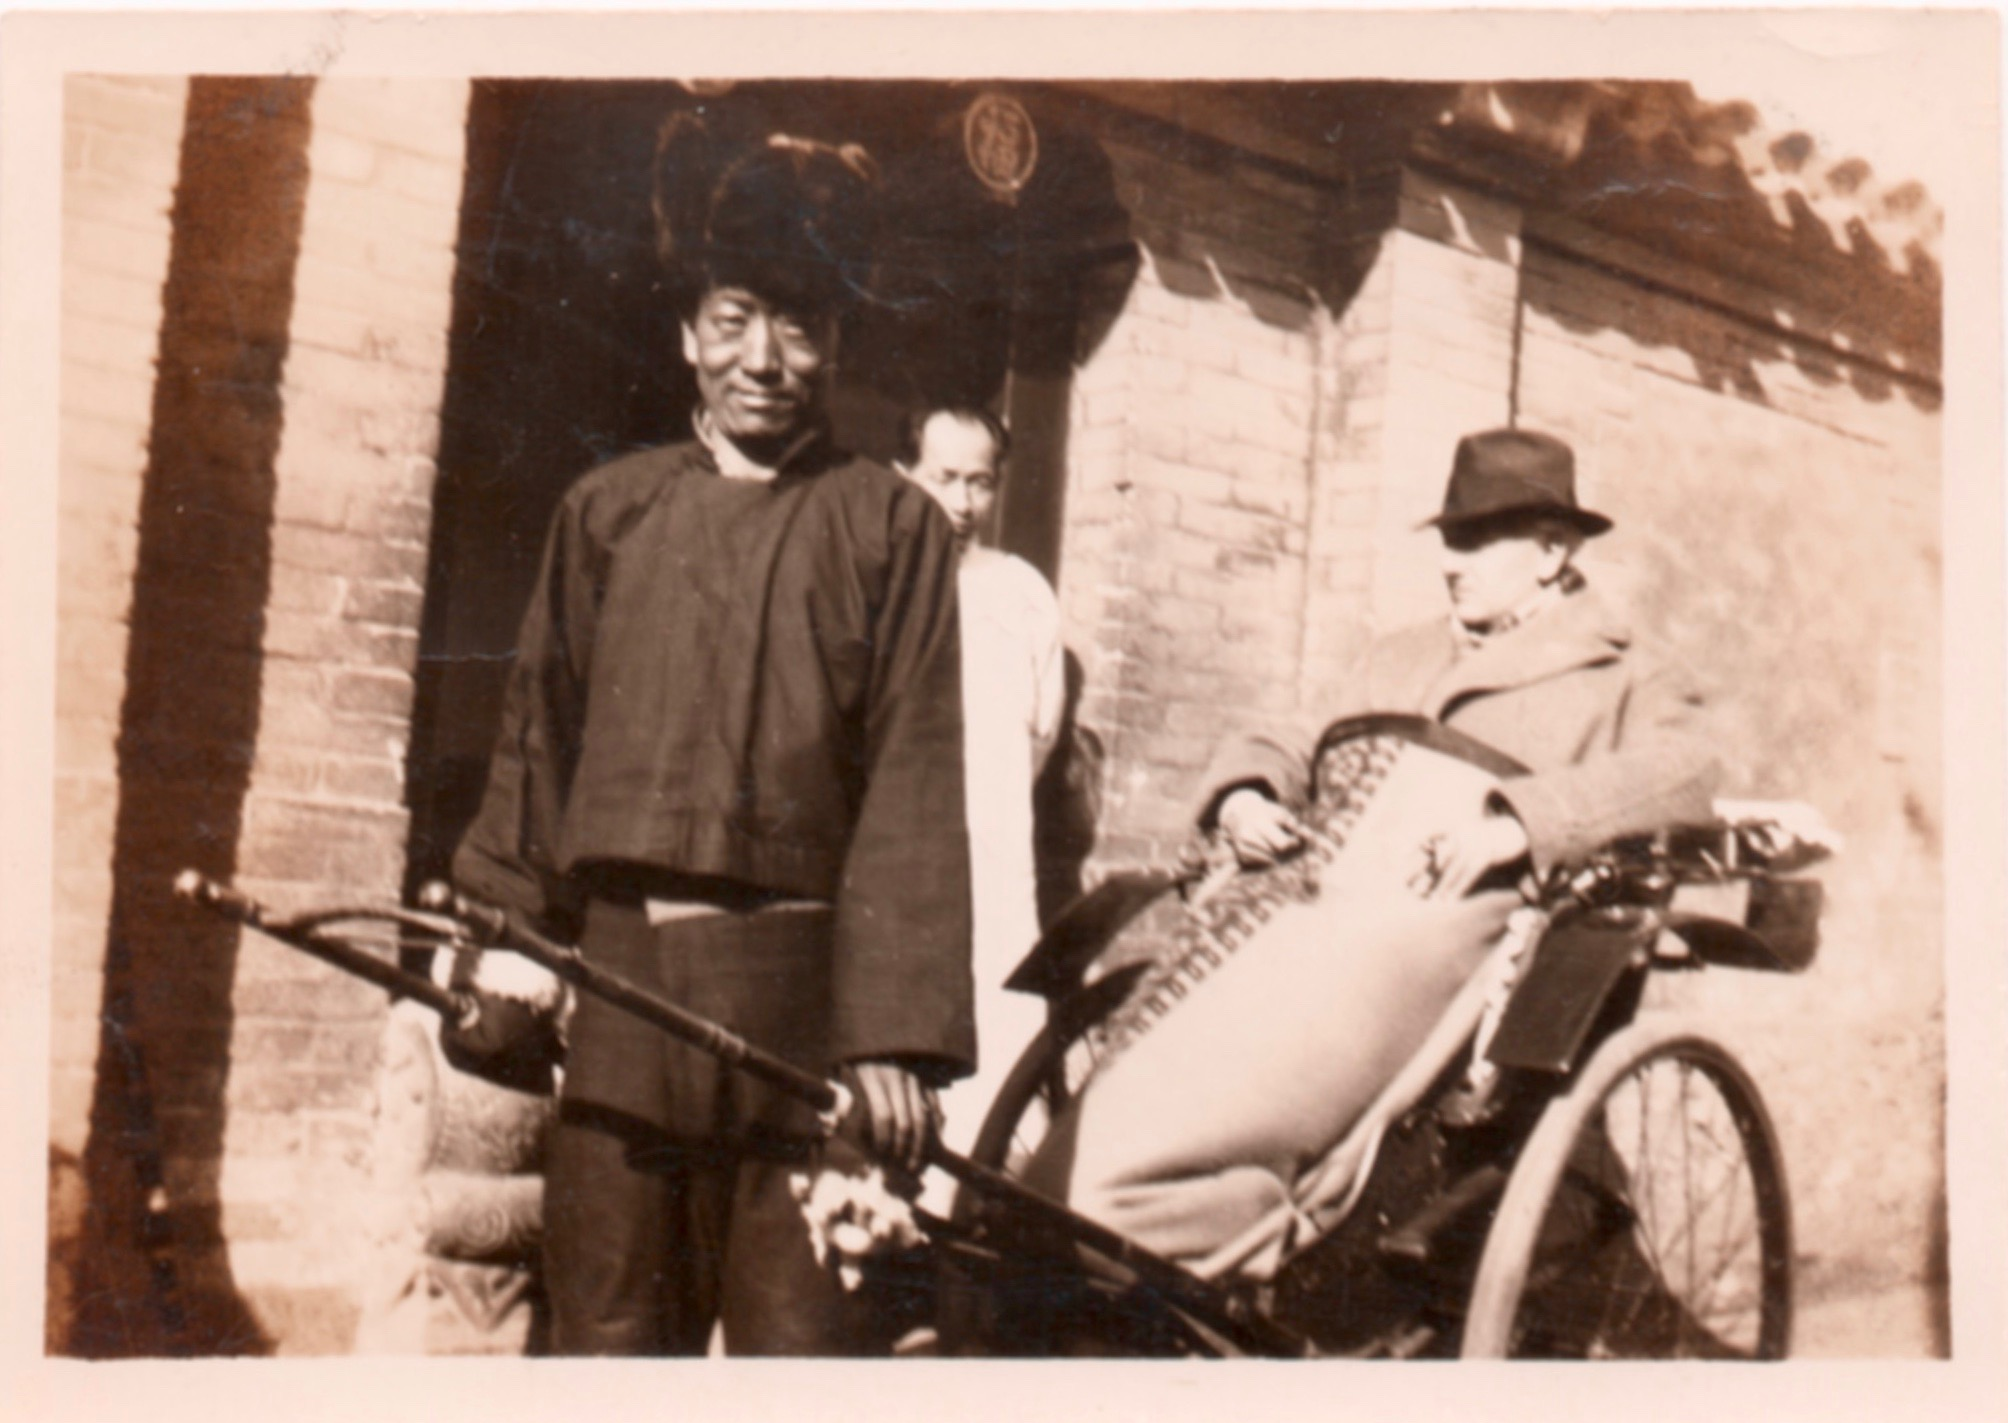 The fellow in white, hidden by the rickshaw driver, is Hsu, Starrett's chief servant while living in Peking. Notice that even while in China, Starrett still managed to find a cigar.